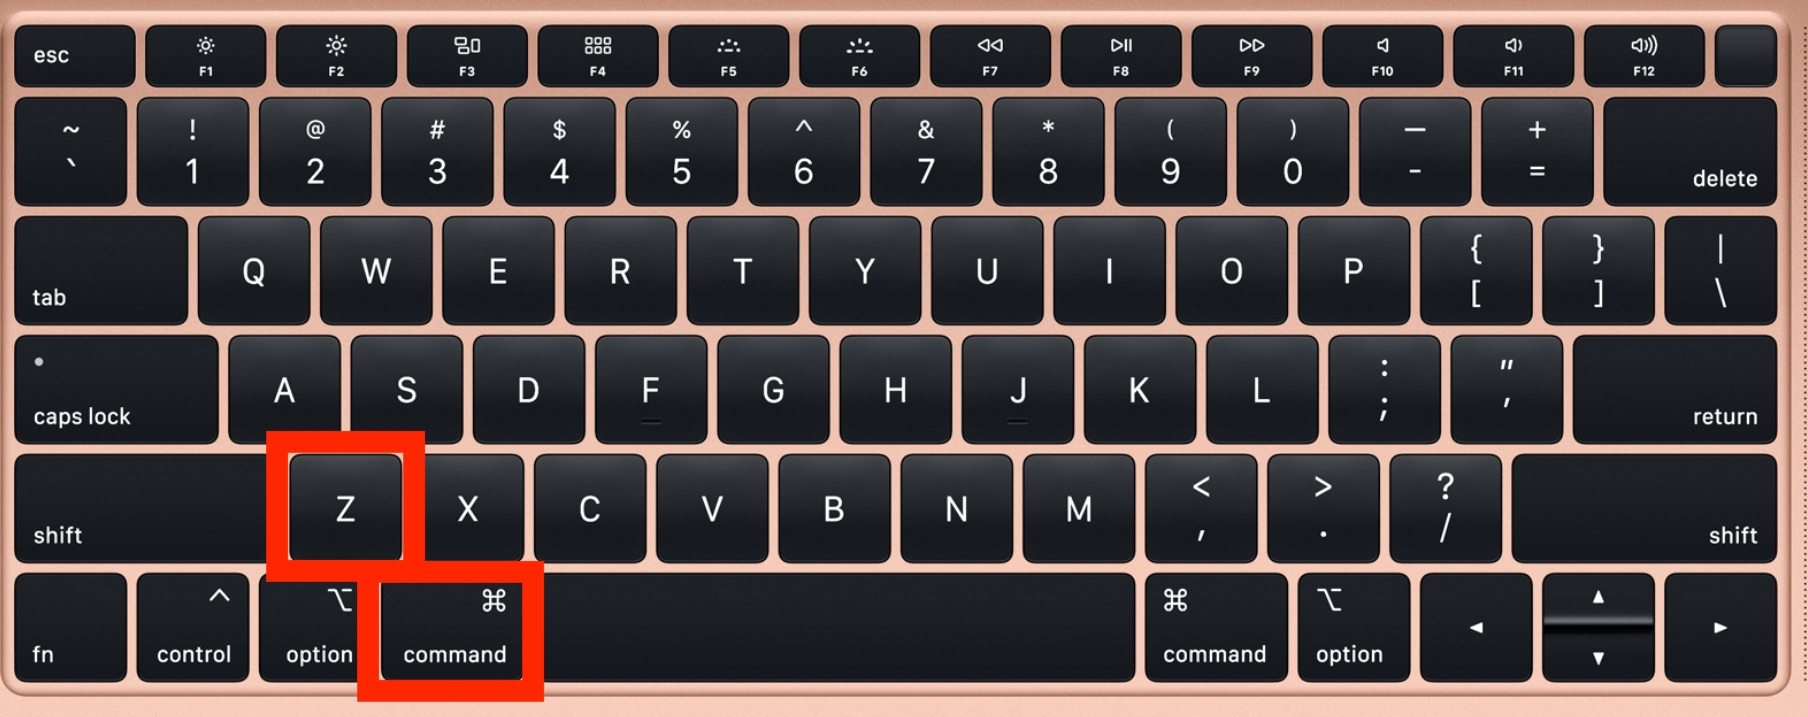 How to Undo on Mac with keyboard shortcut